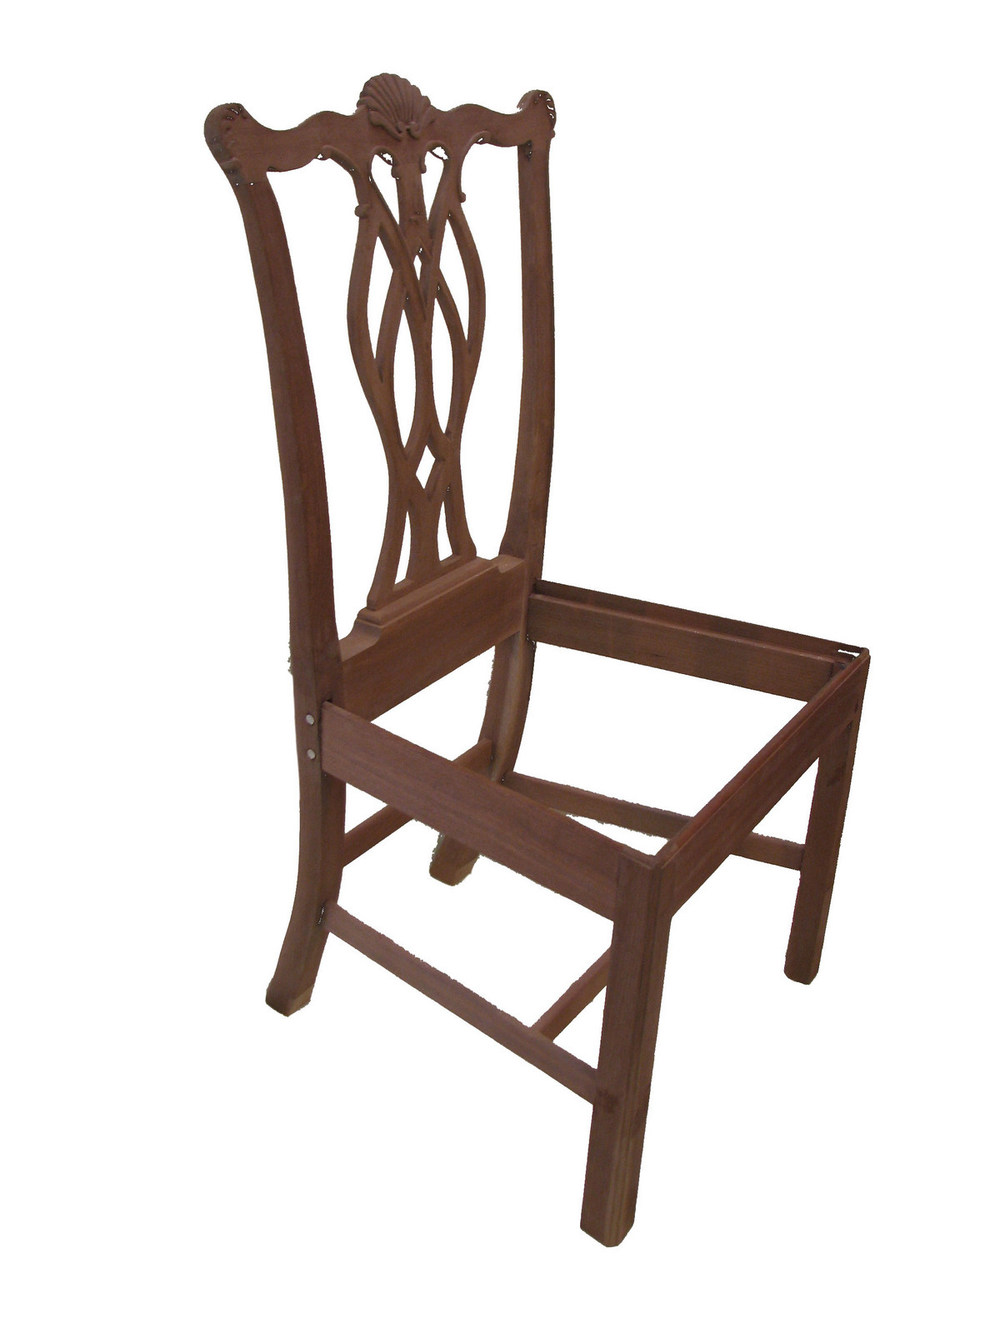 05-chair copy.JPG